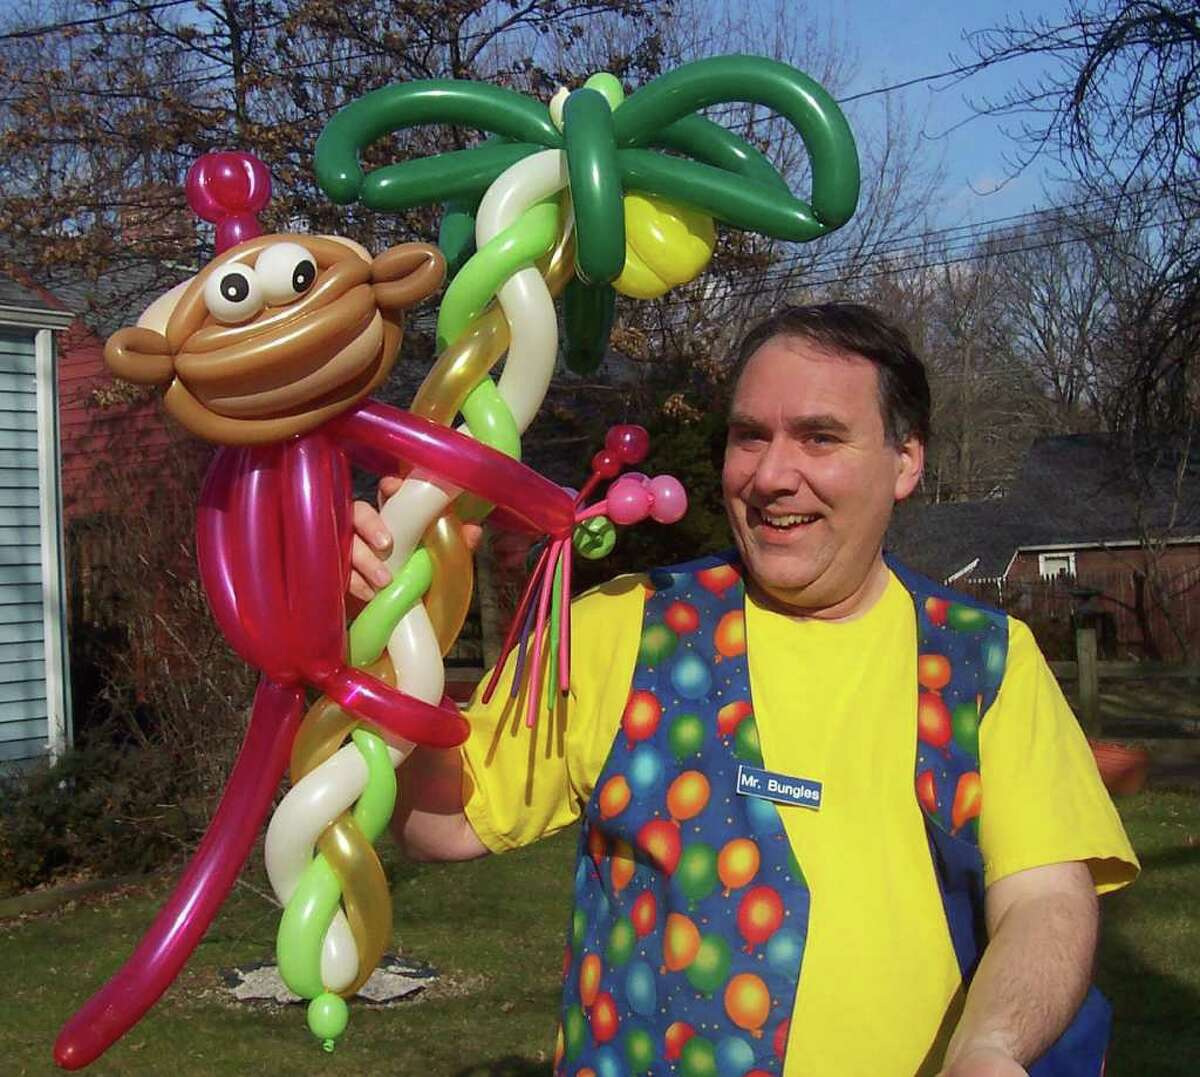 Mr. Bungles will be at the East Norwalk Library Friday.